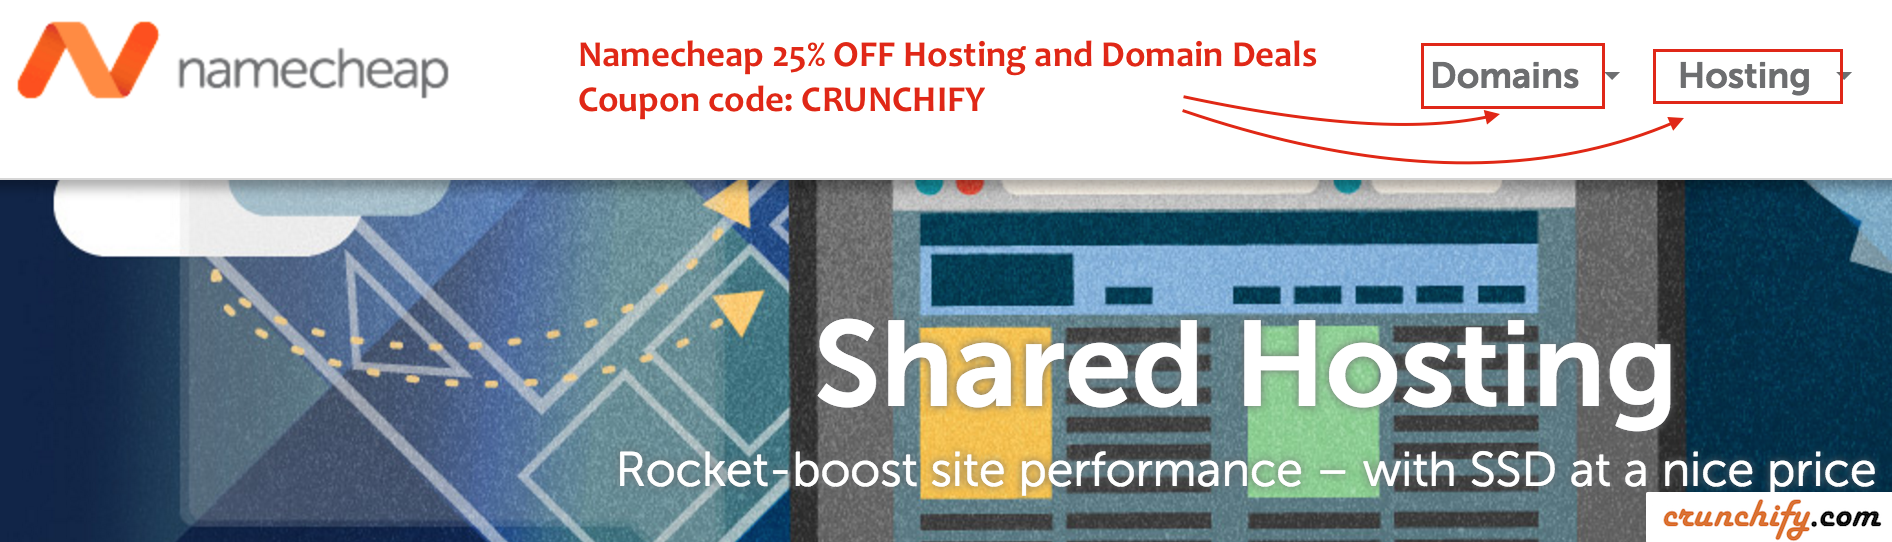 Namecheap and Crunchify Exclusive 25 off on Hosting and